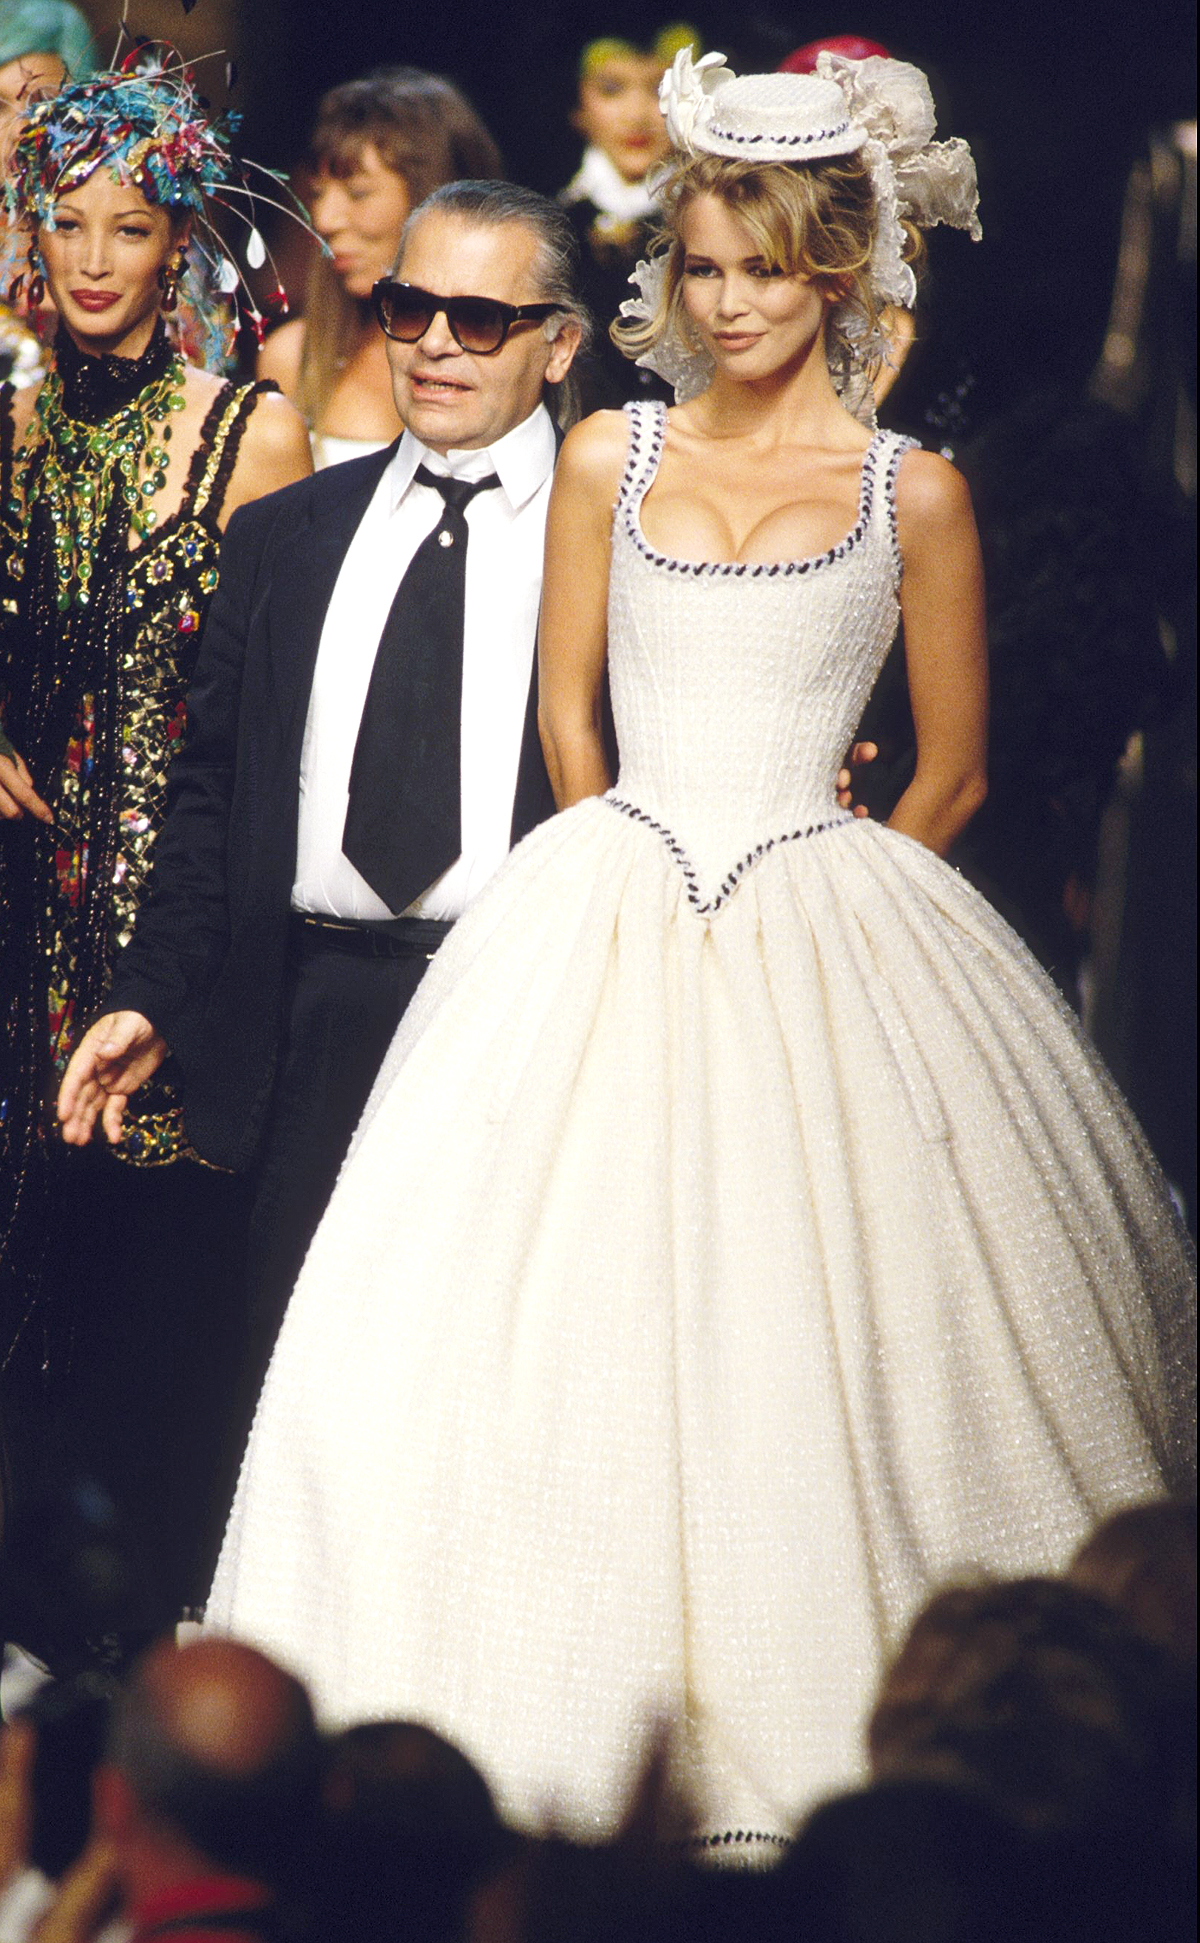 Fashion Haute -Couture Automn -Winter 92/93 In Paris, France In July, 1992.